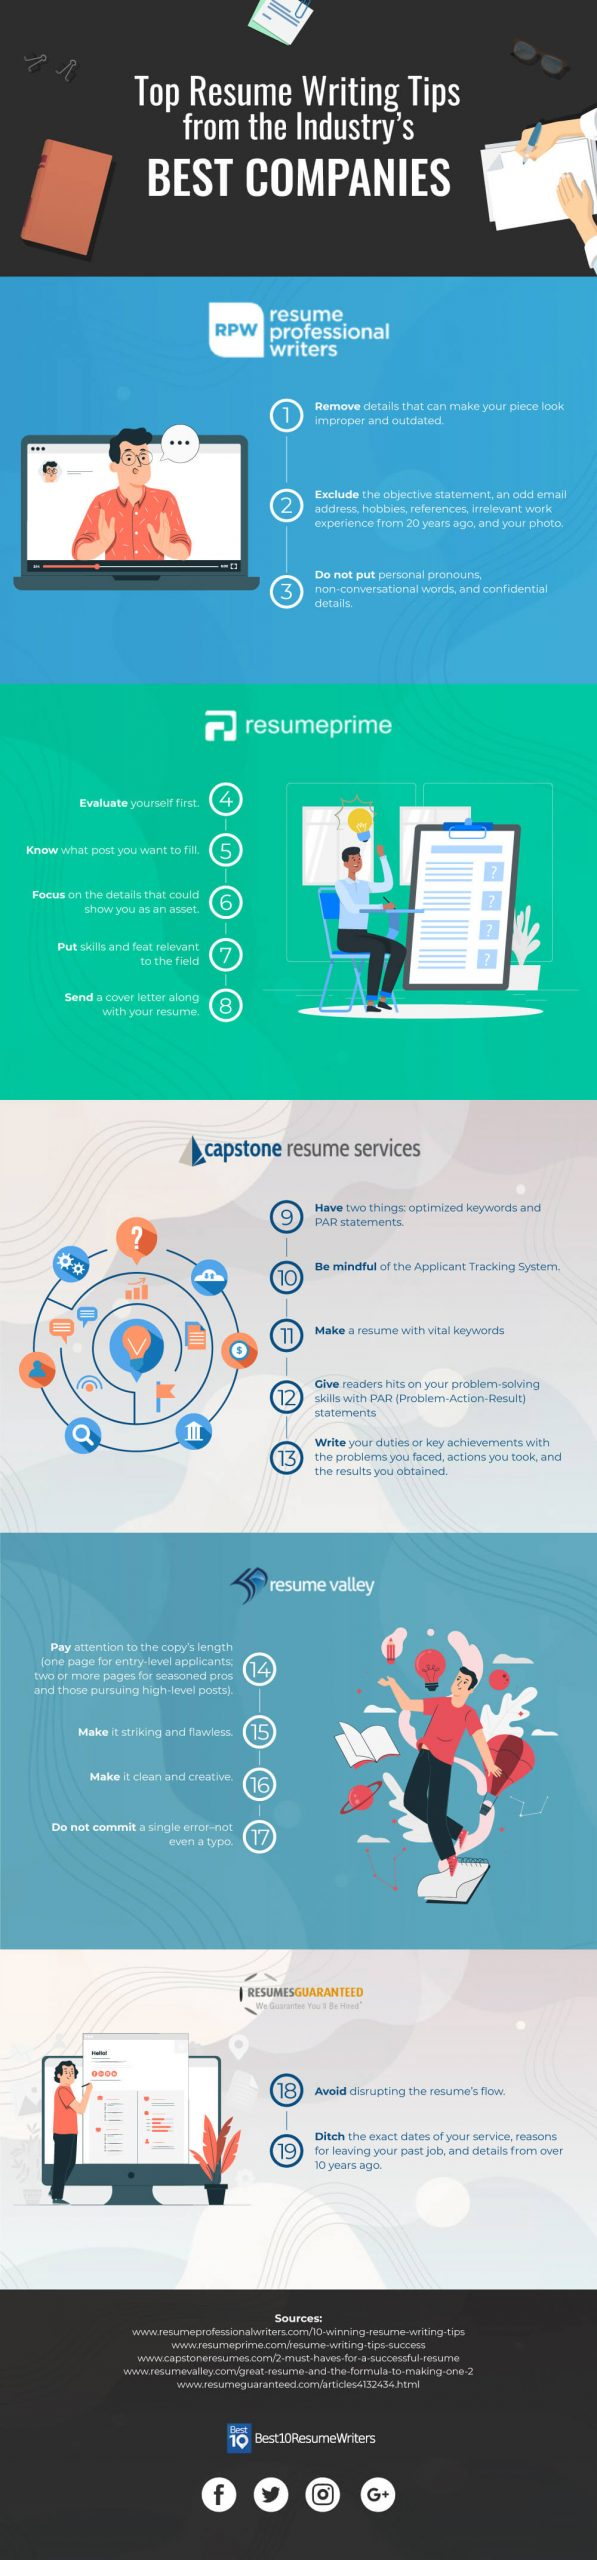 Top Resume Writing Tips from the Industry's Best Companies infographic